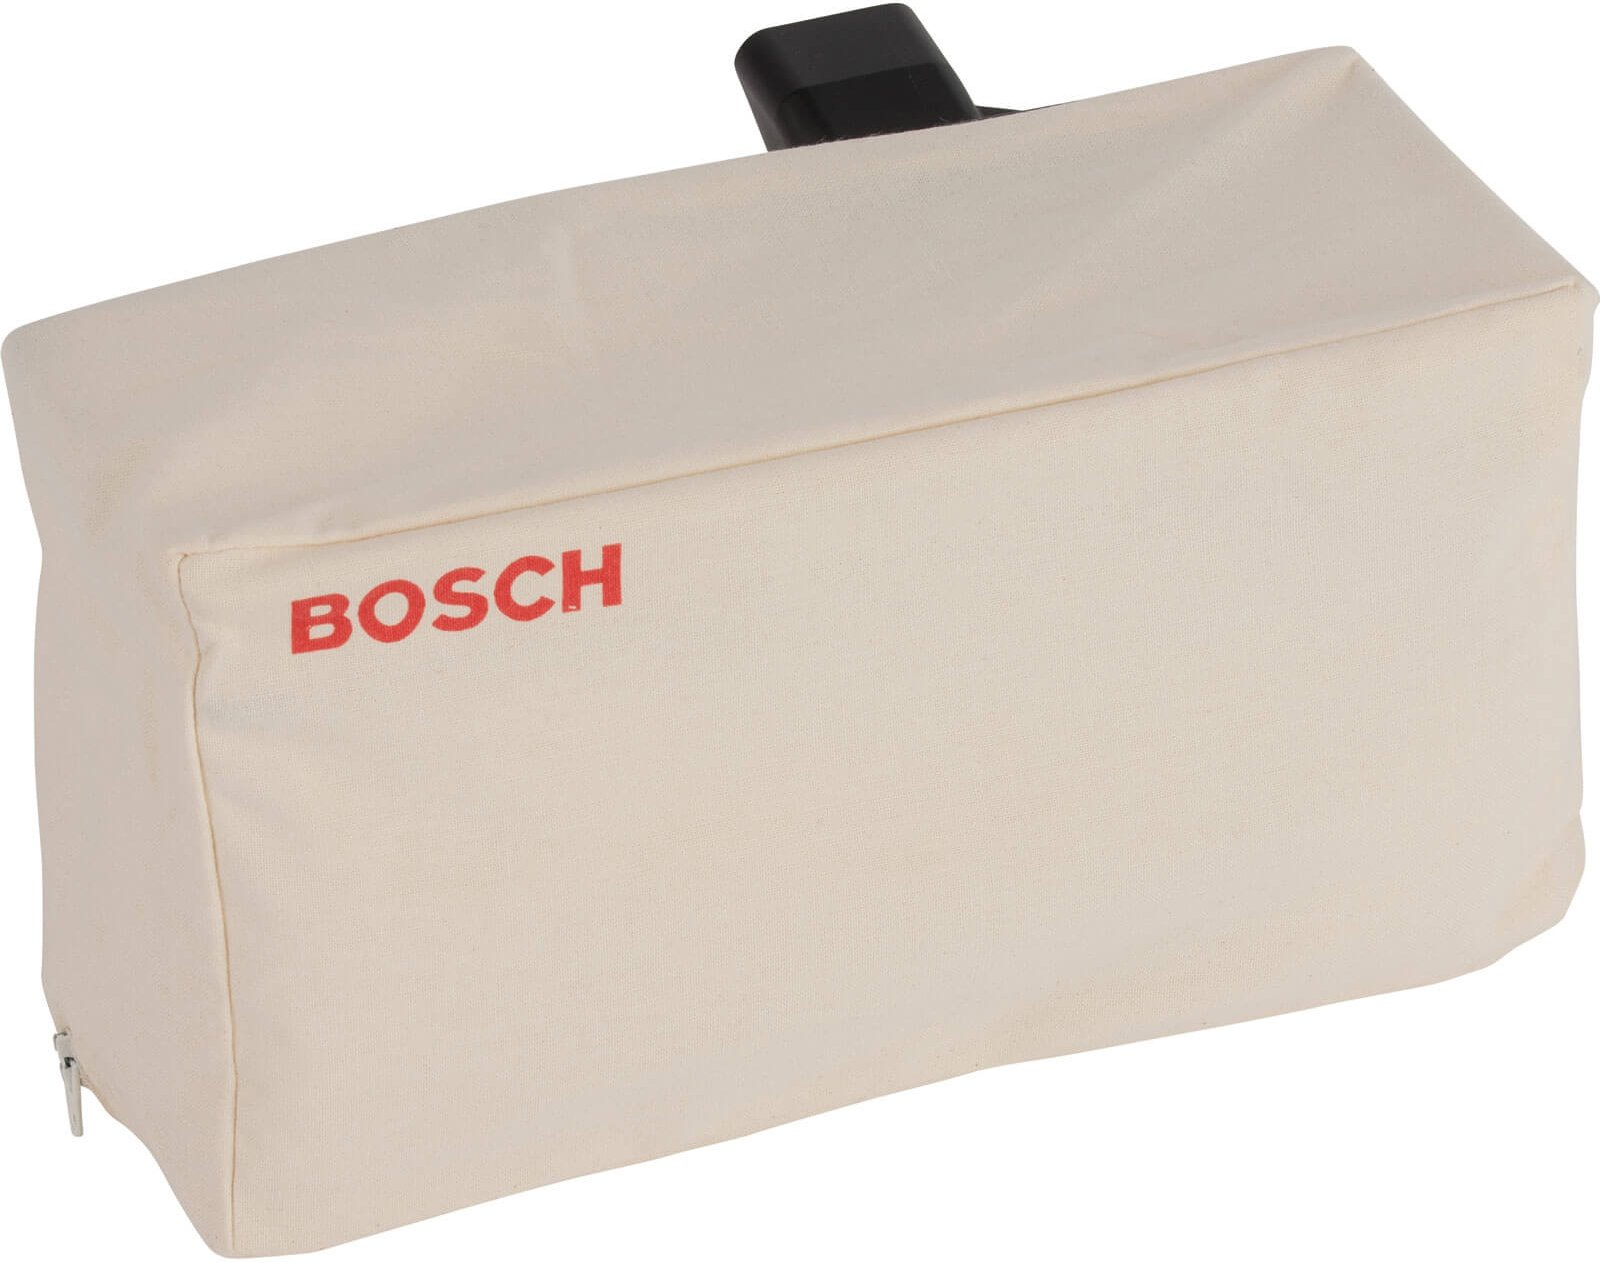 Bosch Dust Bag for PHO 1 and 15 82 and 100 Planers